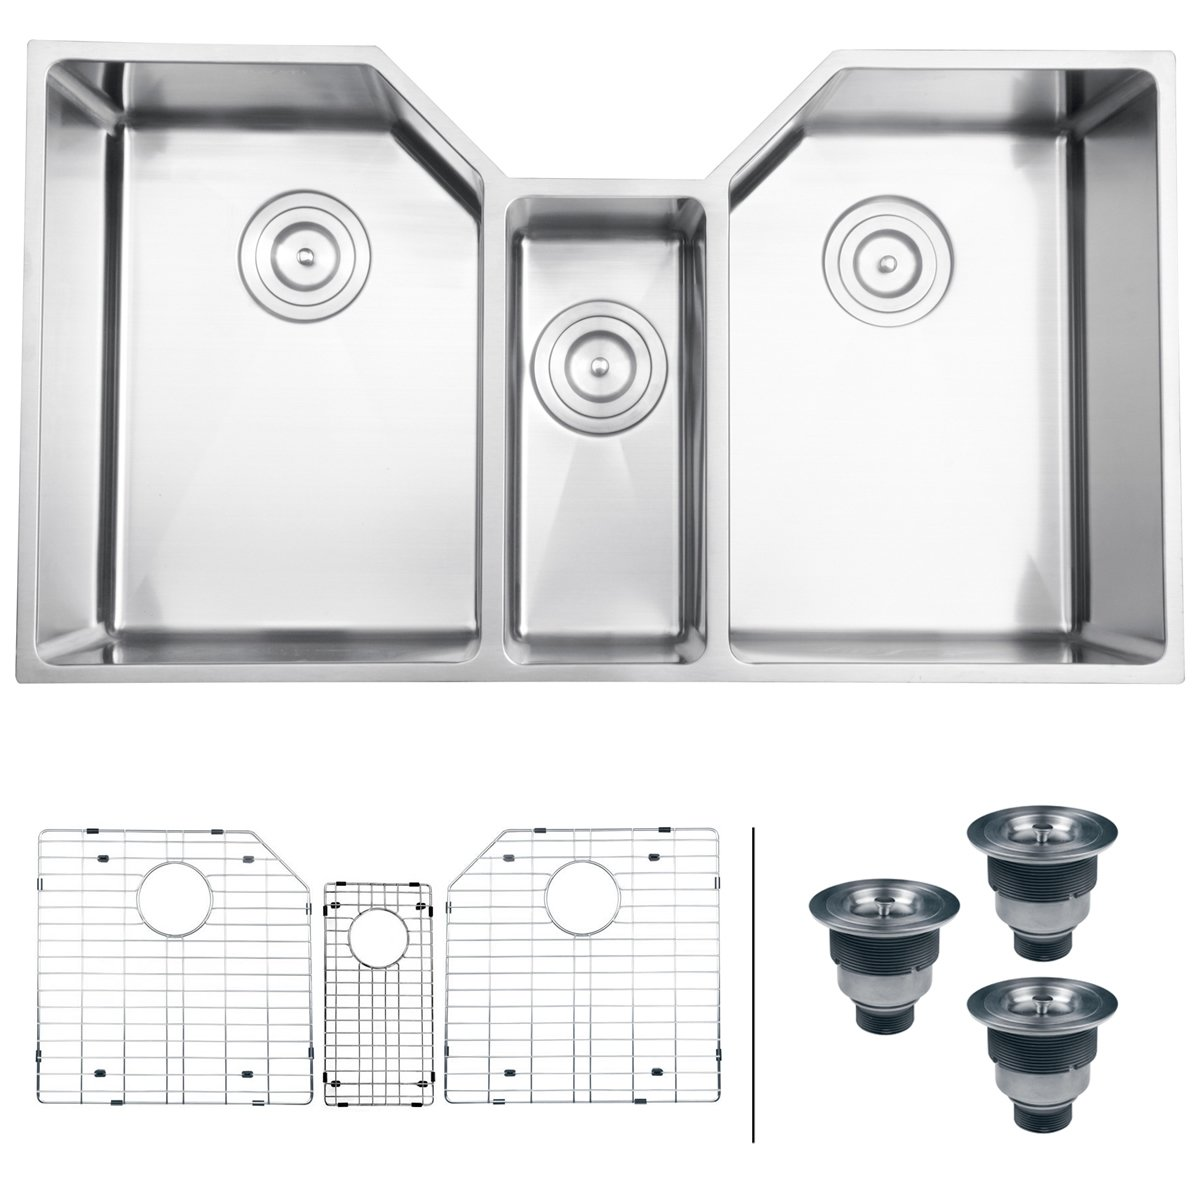 ruvati rvh8500 undermount 16 gauge 35   kitchen sink triple bowl stainless steel   double bowl sinks   amazon com ruvati rvh8500 undermount 16 gauge 35   kitchen sink triple bowl      rh   amazon com